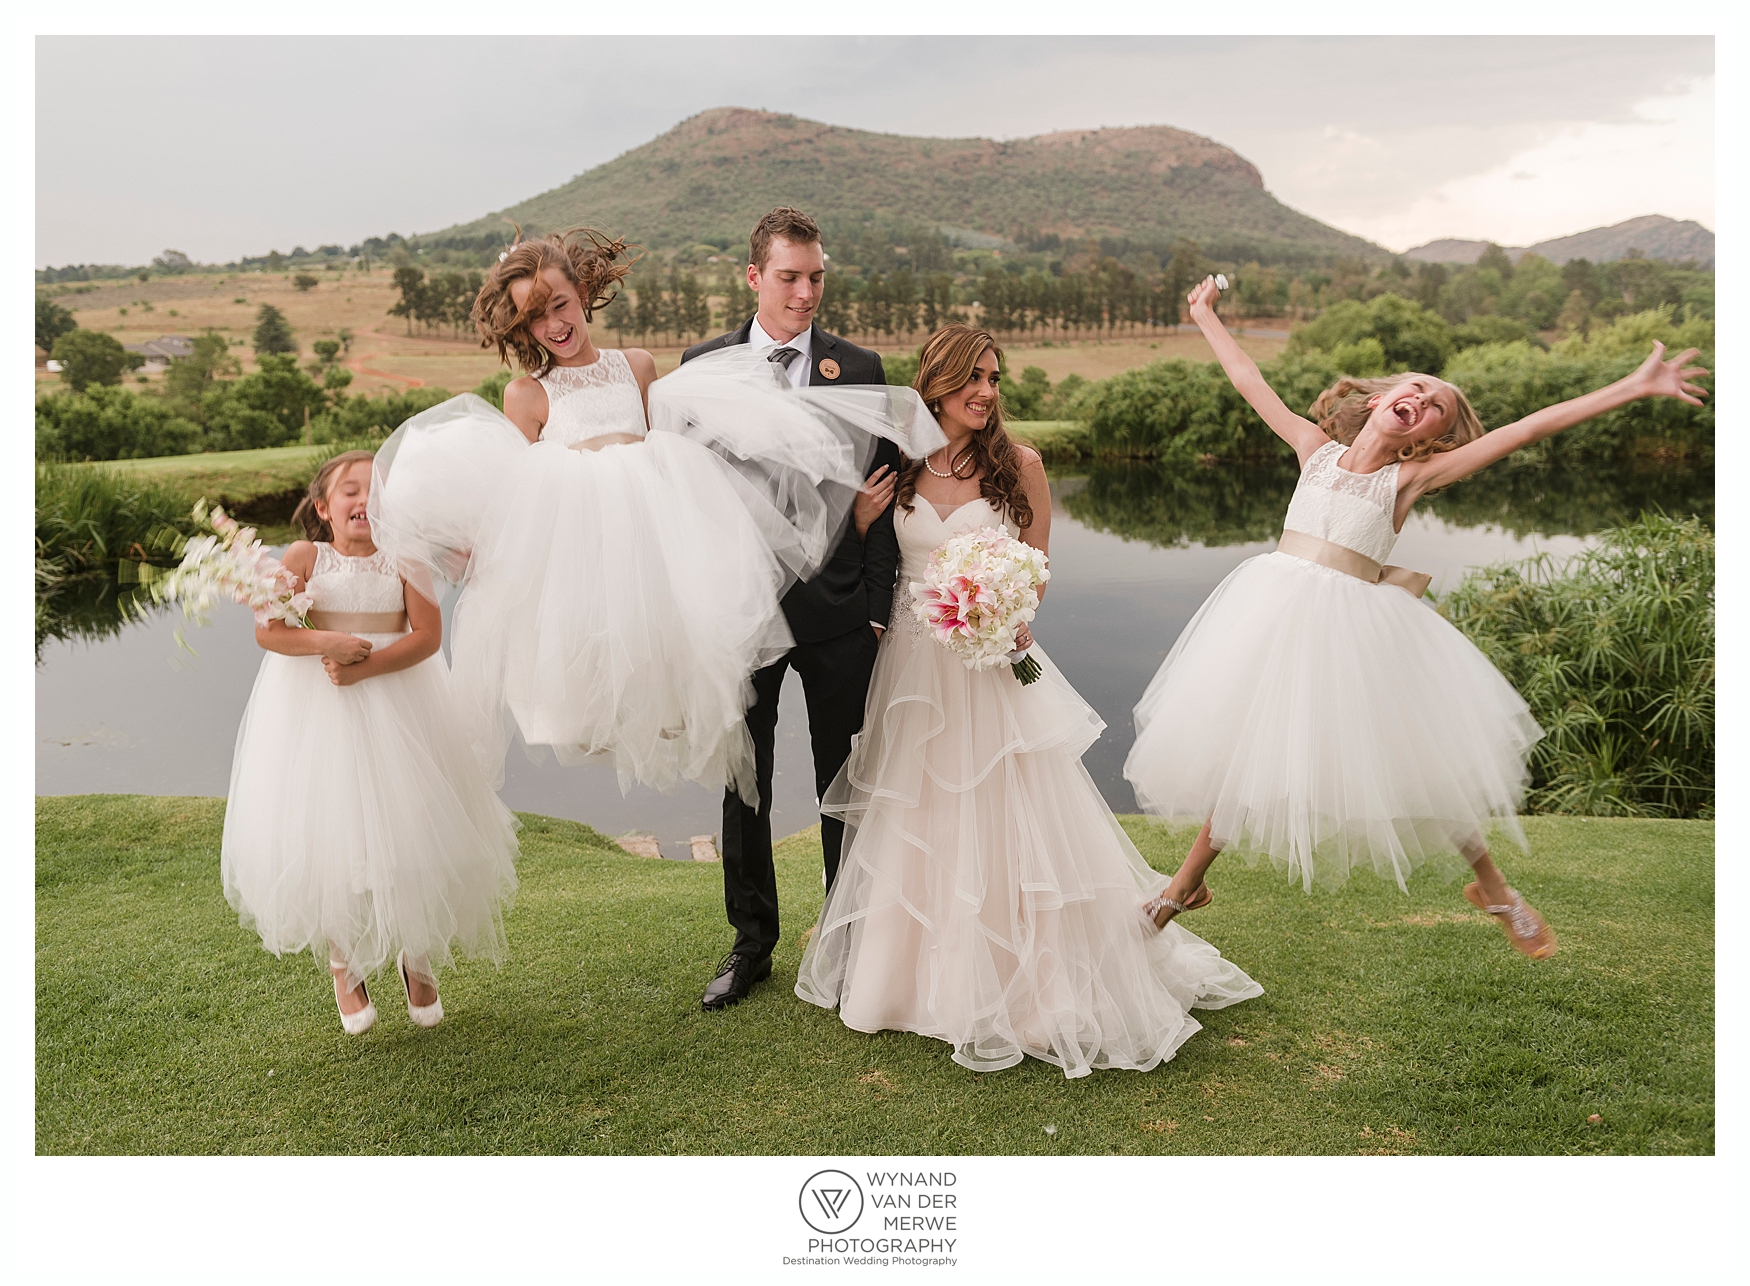 Ryan and Natalie's wedding at Cradle Valley Guesthouse